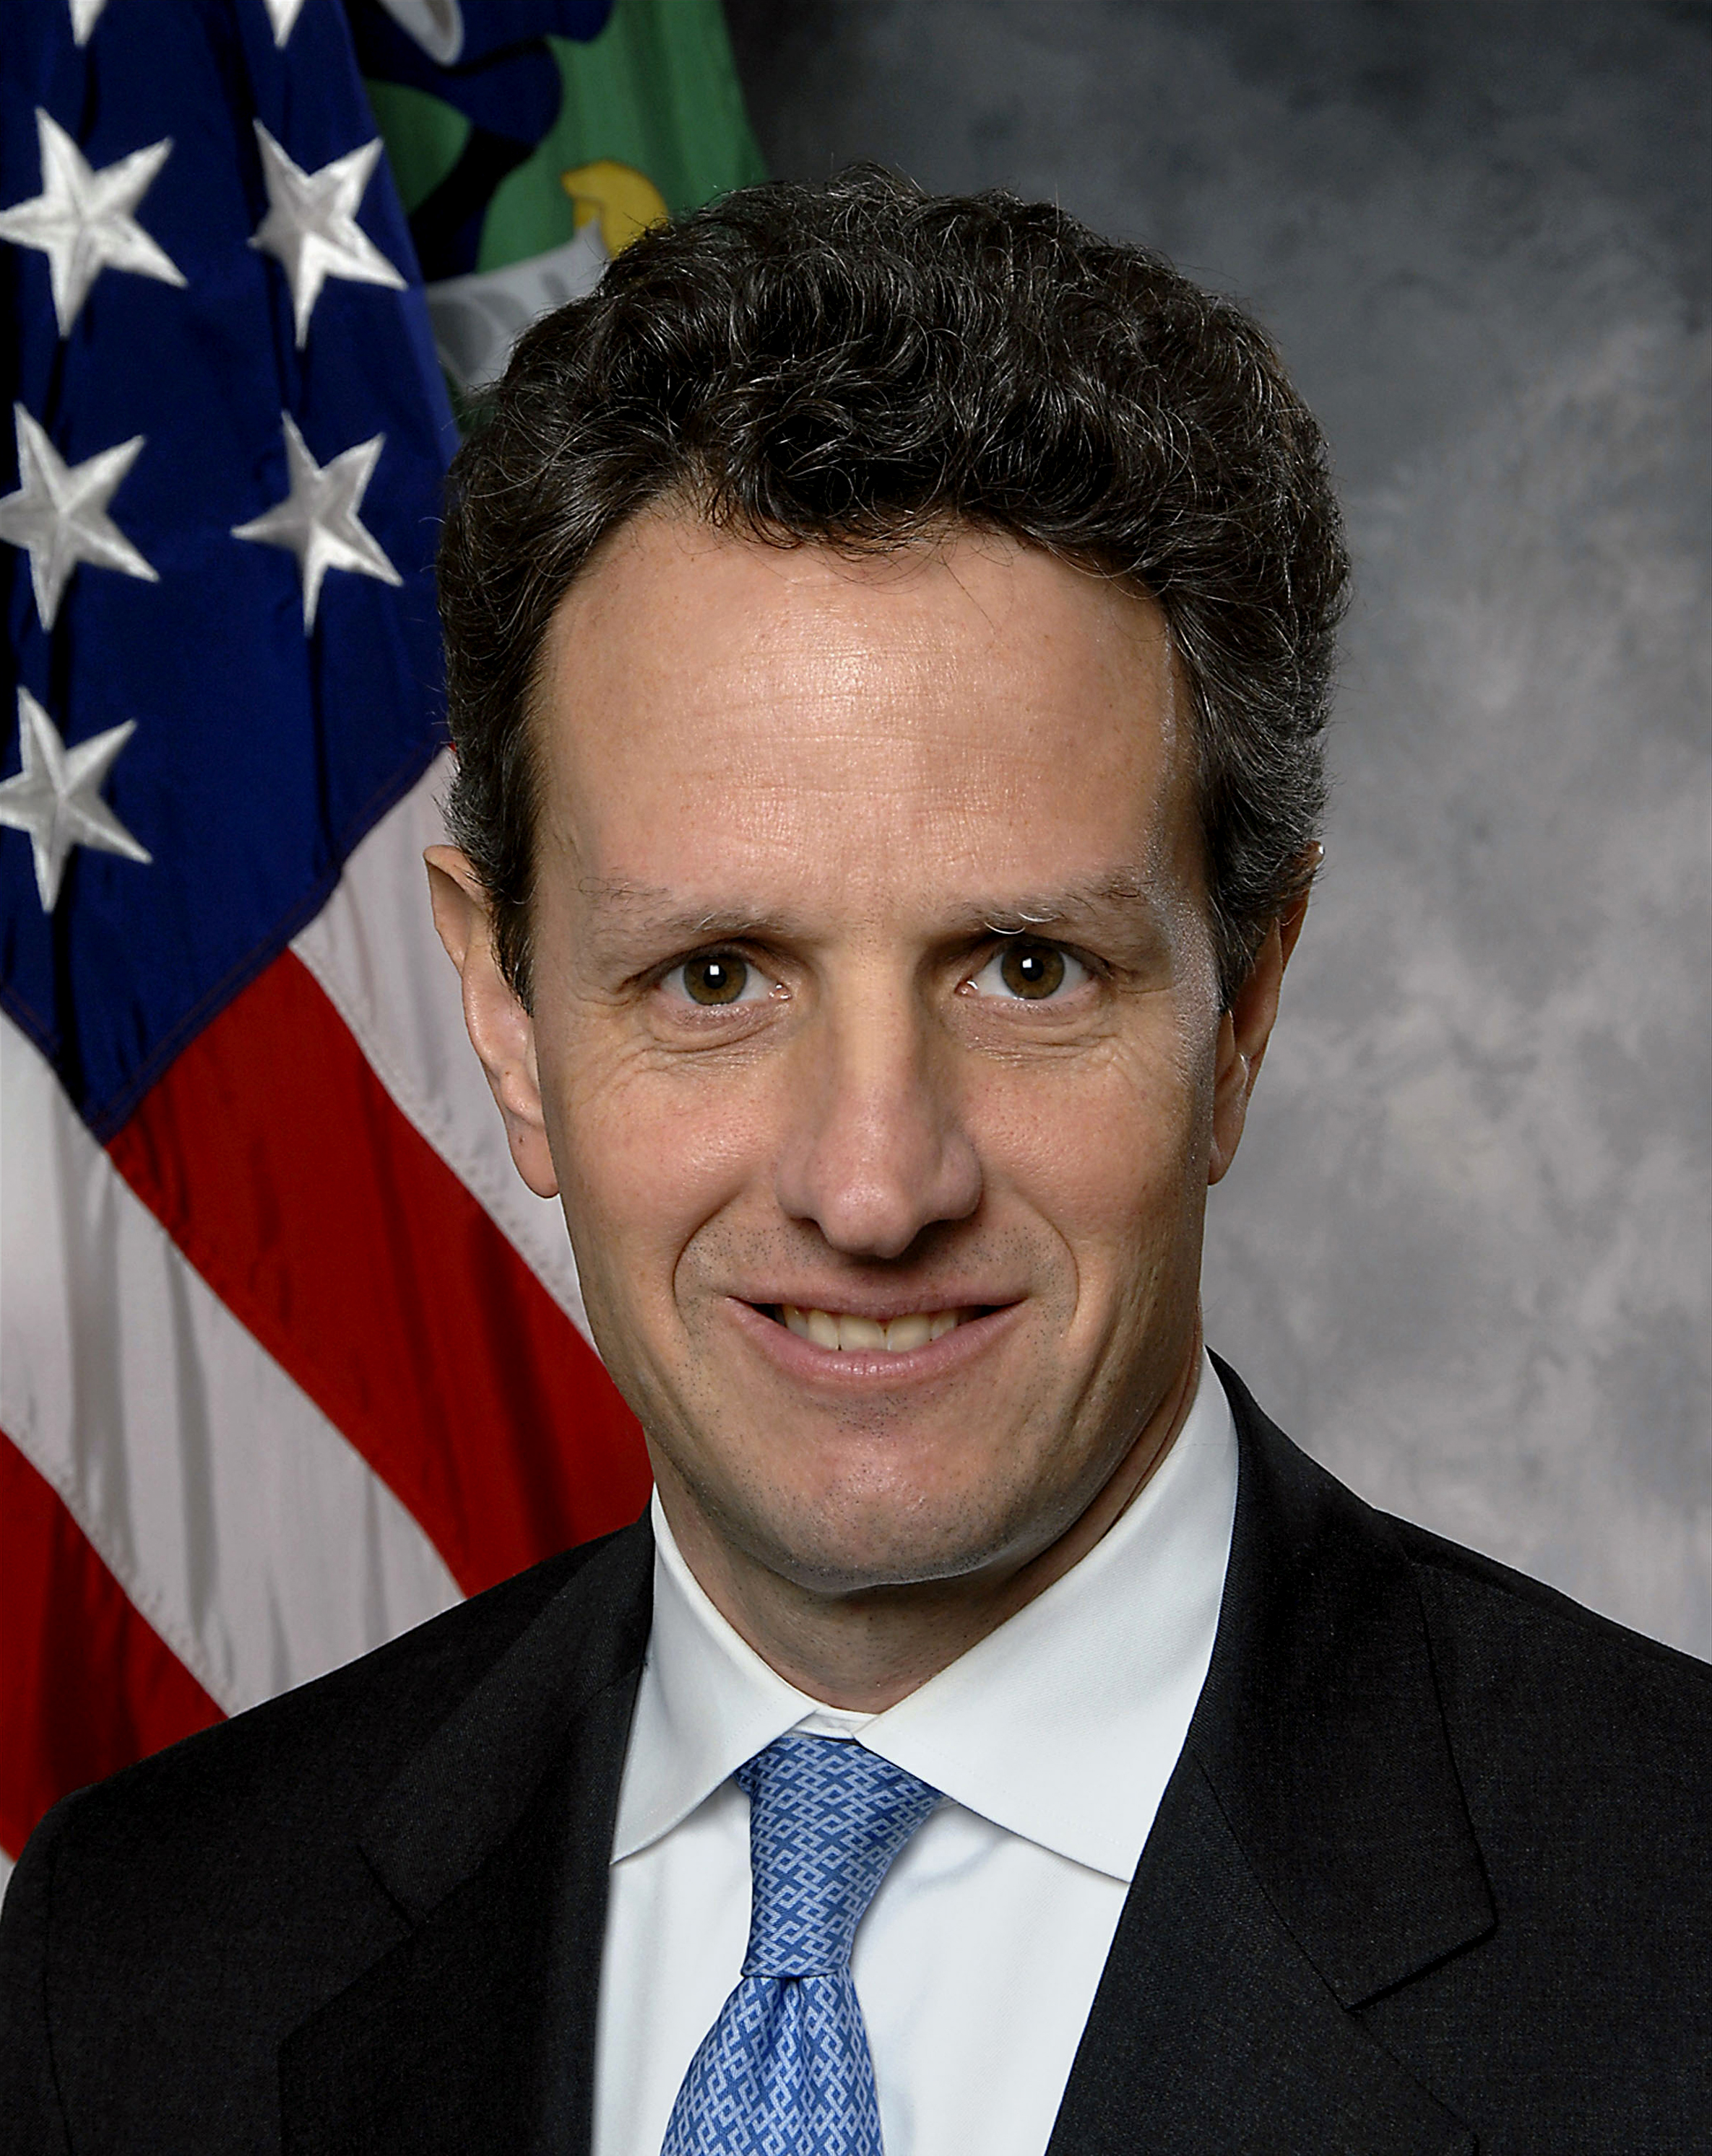 Timothy Geithner Net Worth